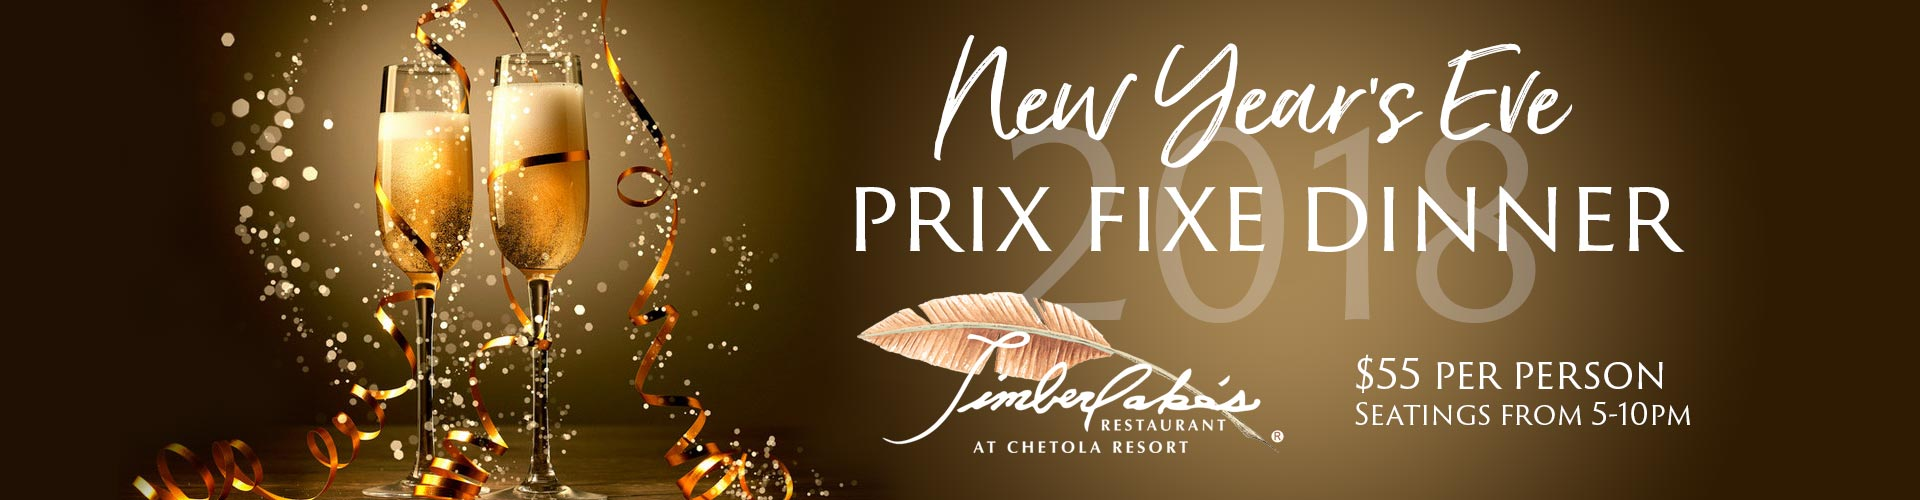 new year's eve at chetola resort prix fixe dinner timberlake's restaurant